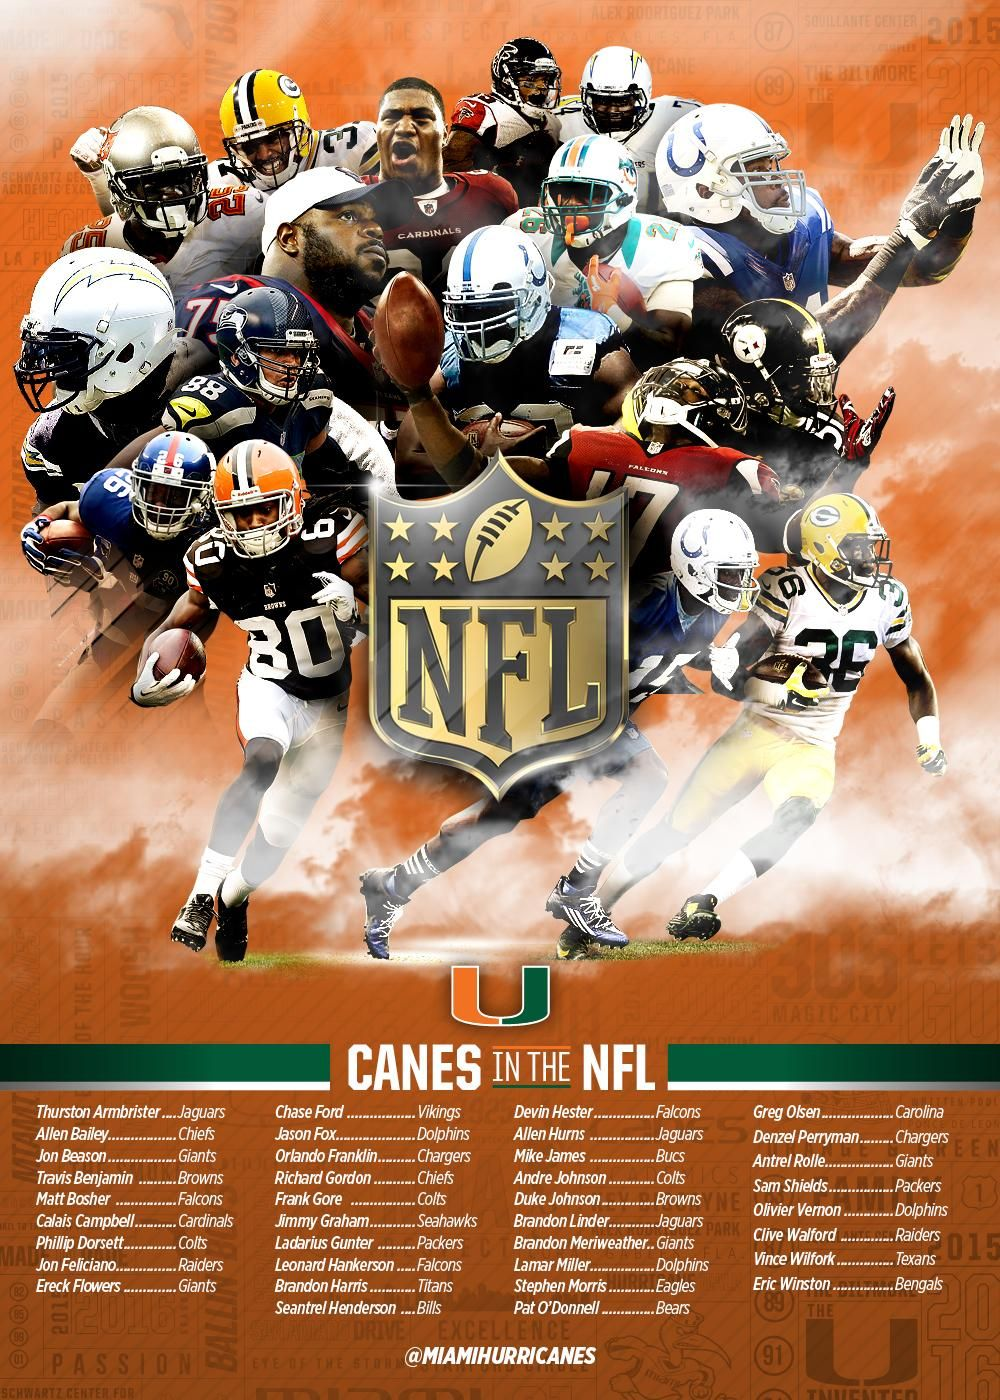 Miami Hurricanes On Miami Football Miami Hurricanes Football Miami Hurricanes